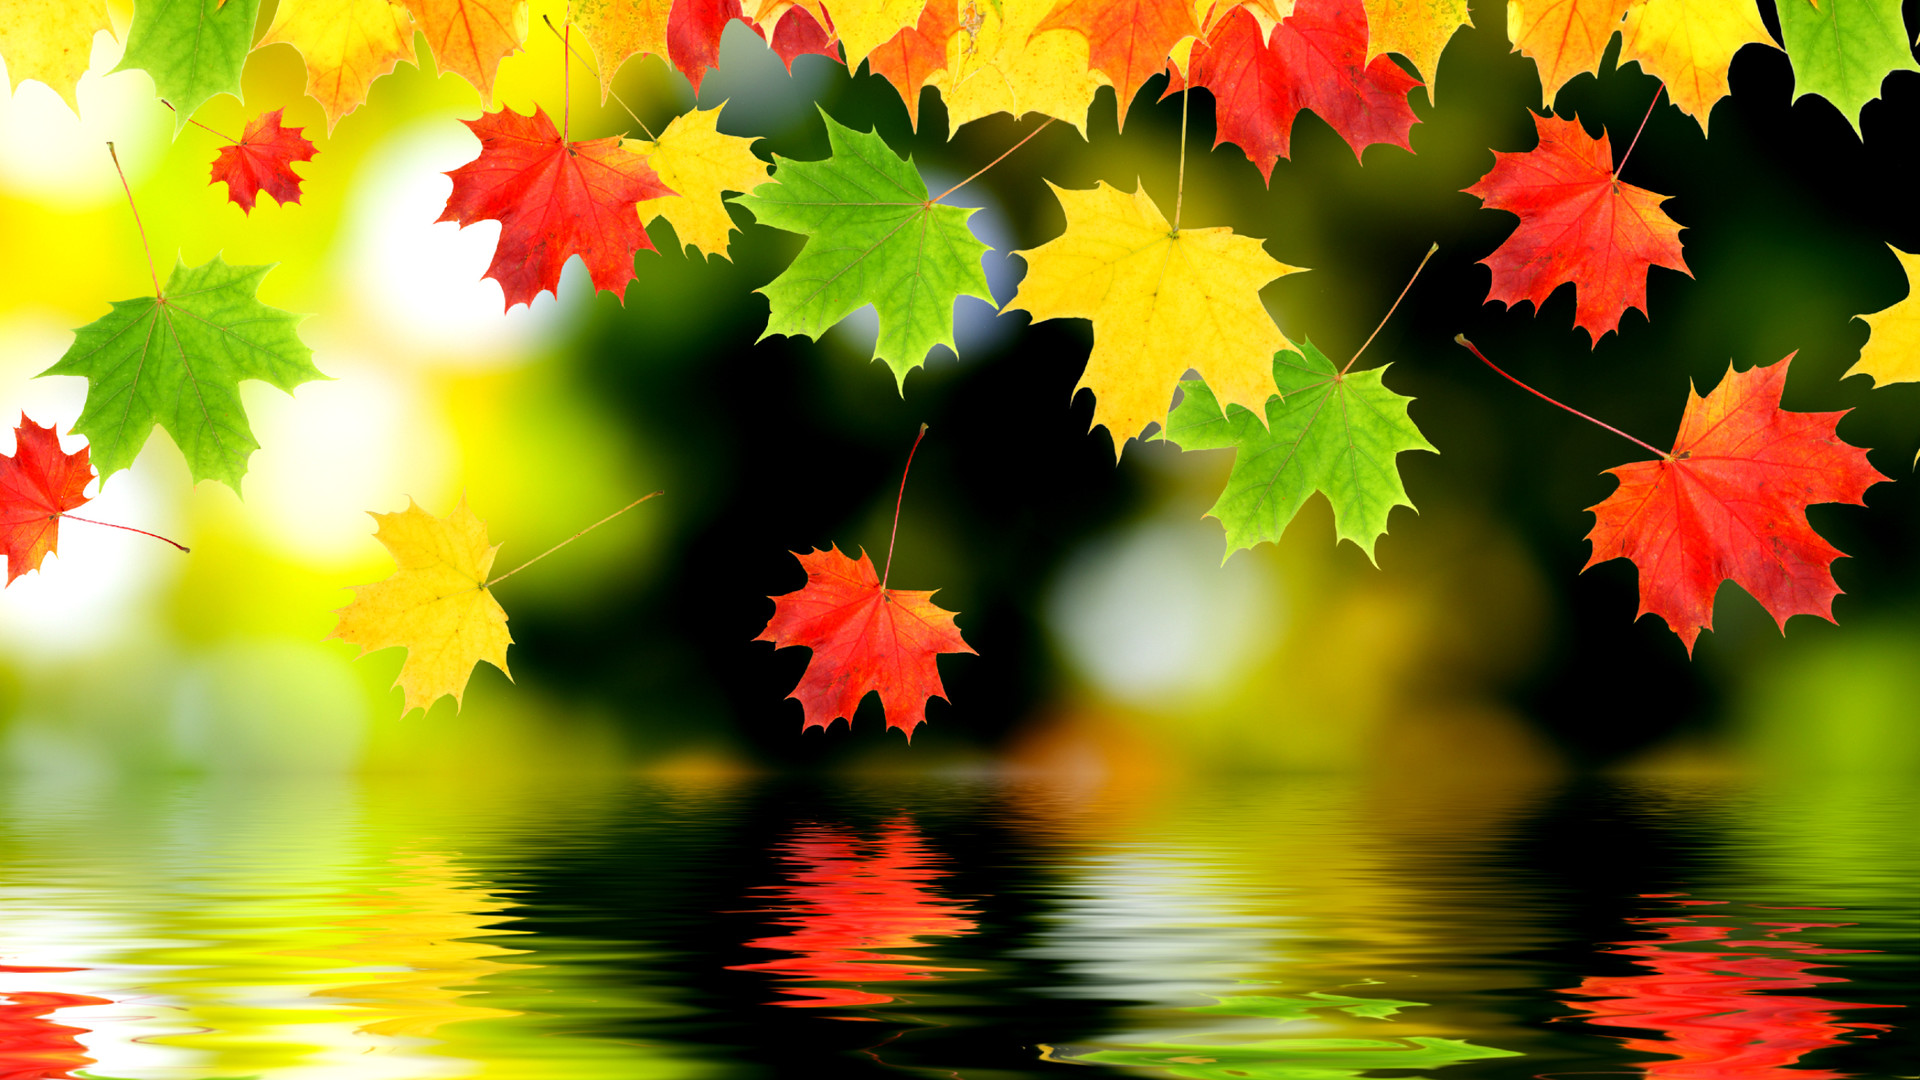 Full HD Autumn Or Fall Wallpapers With Maple Leaves